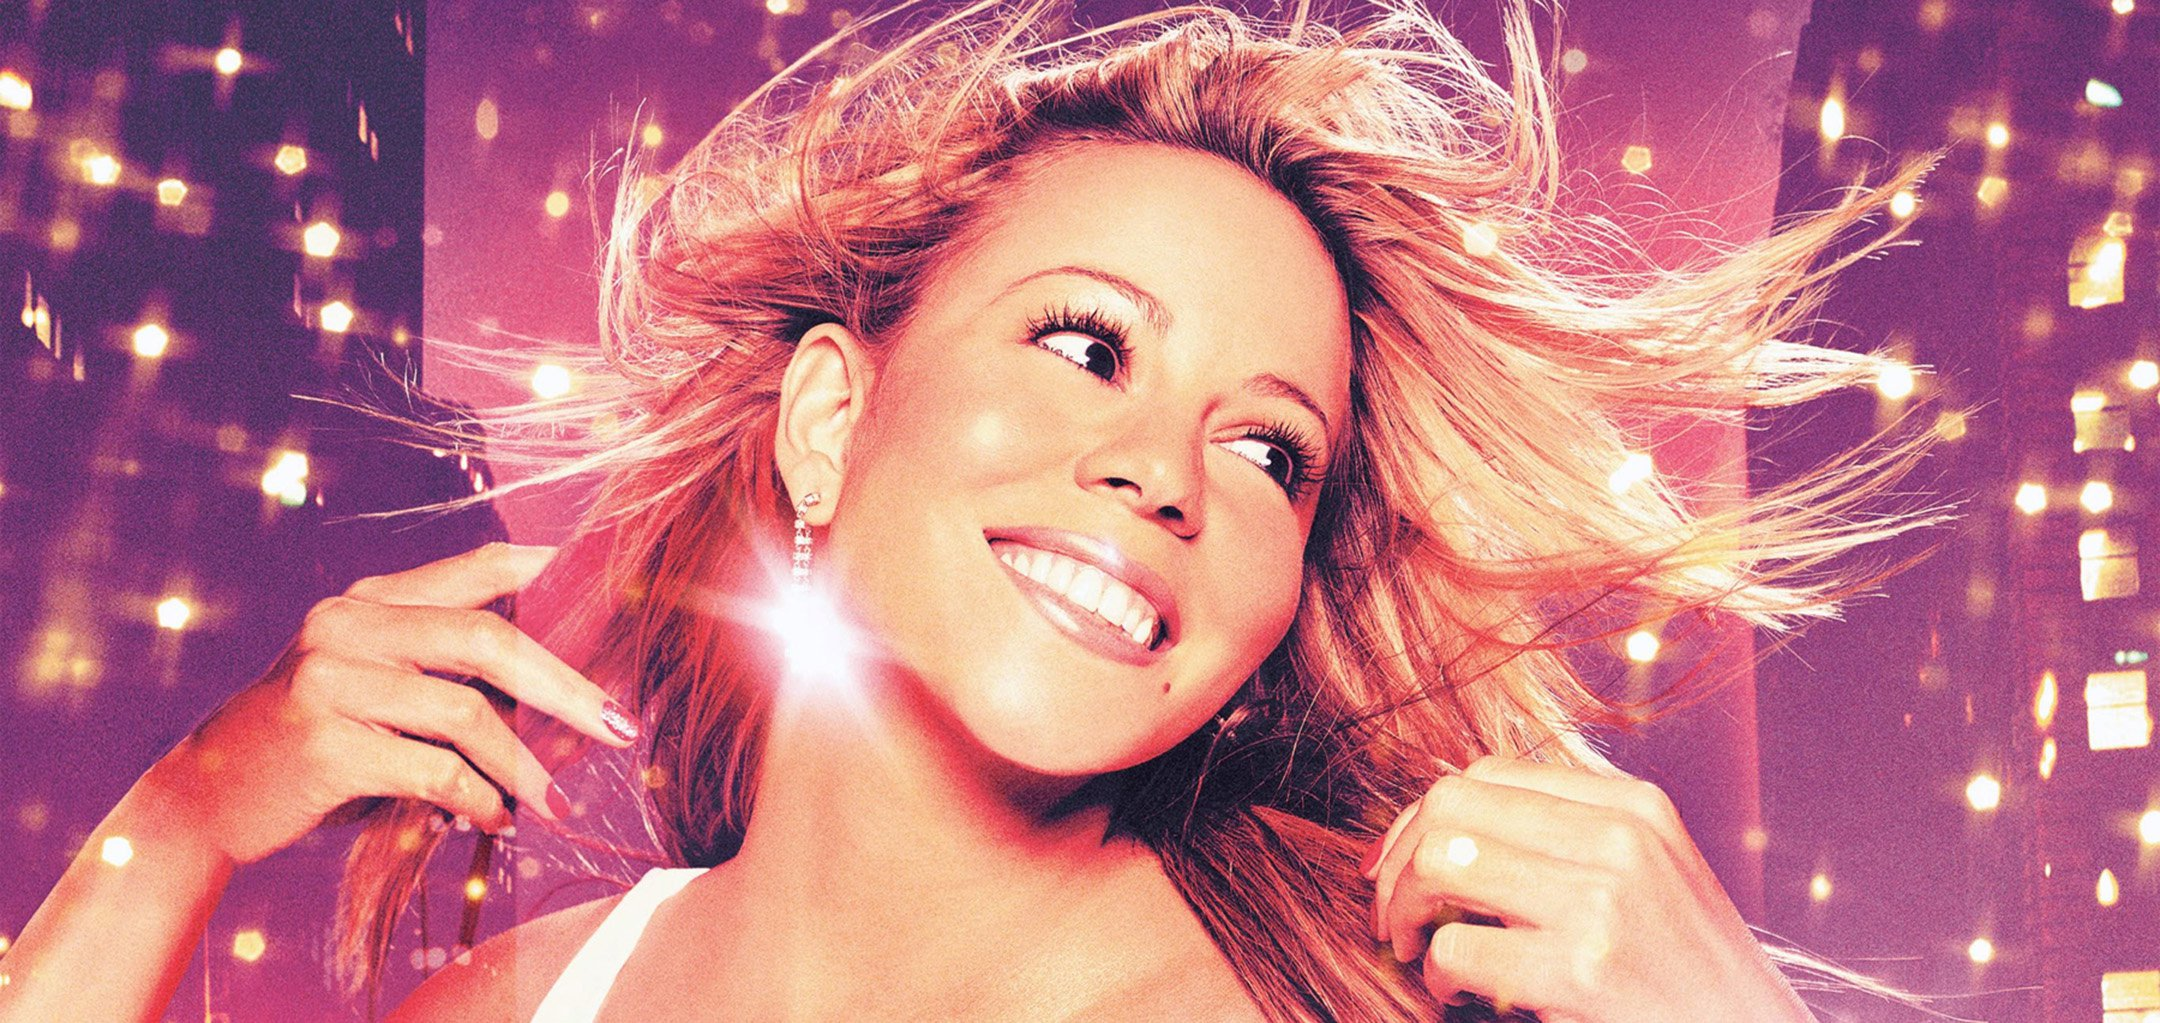 Mariah Carey in a promotional shot from 'Glitter' (2001)